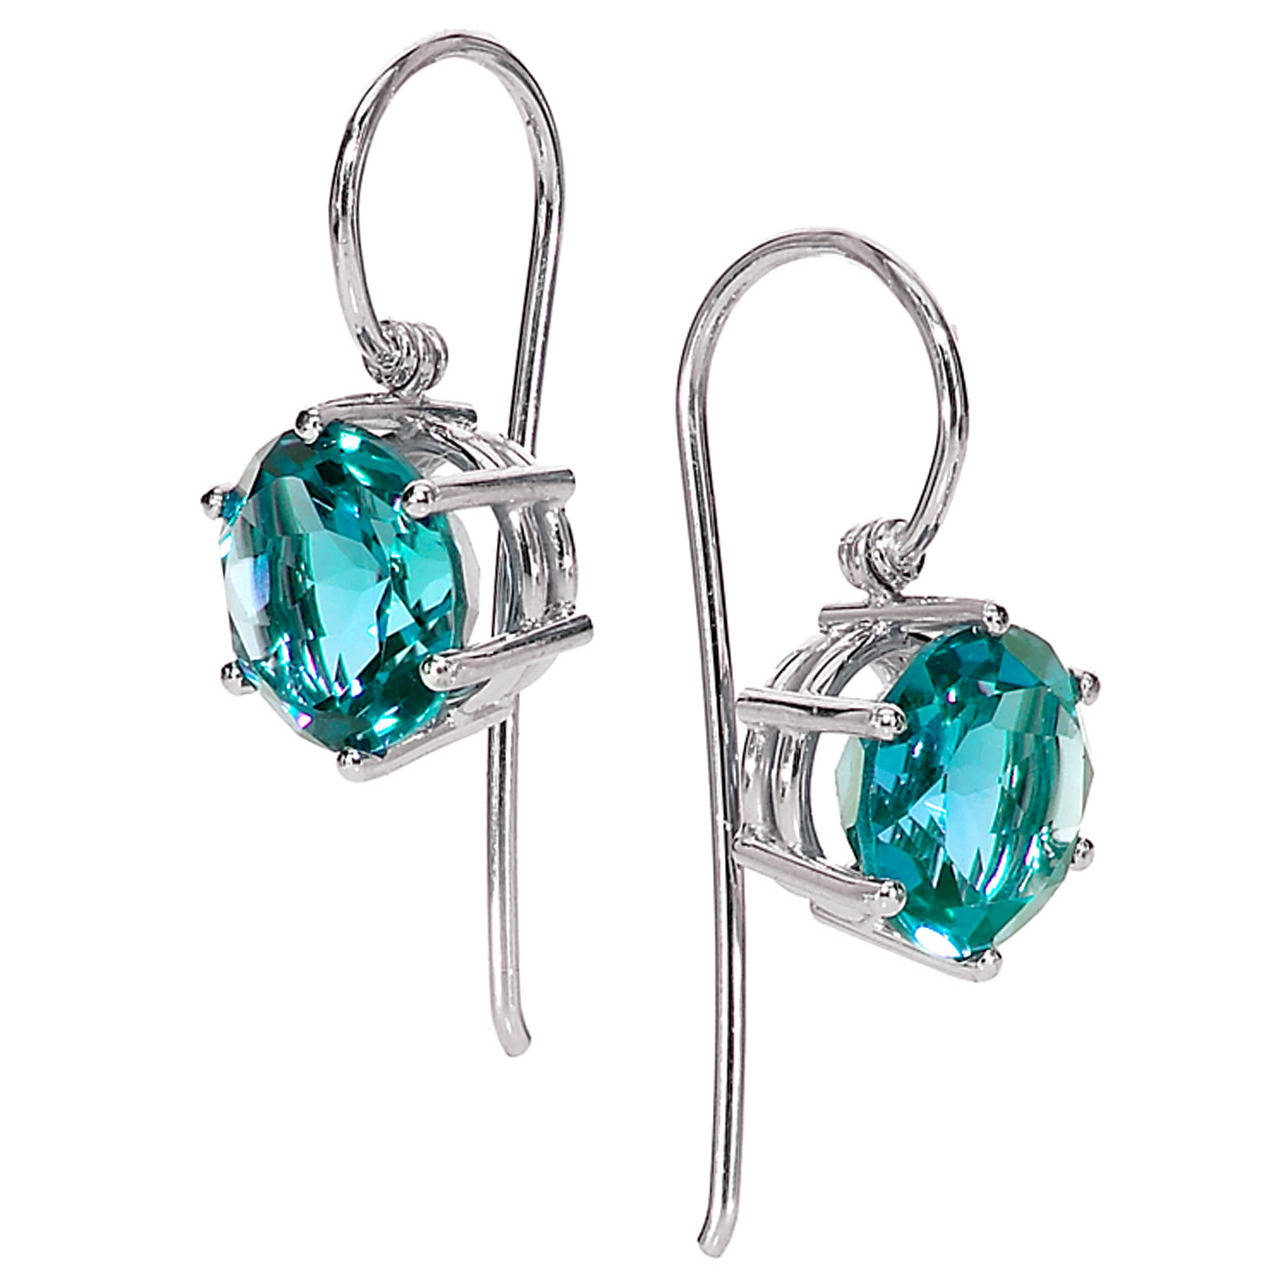 Matched Blue Zircon Gold Princess Dangle Earrings,OFFERED BY  SZOR COLLECTIONS